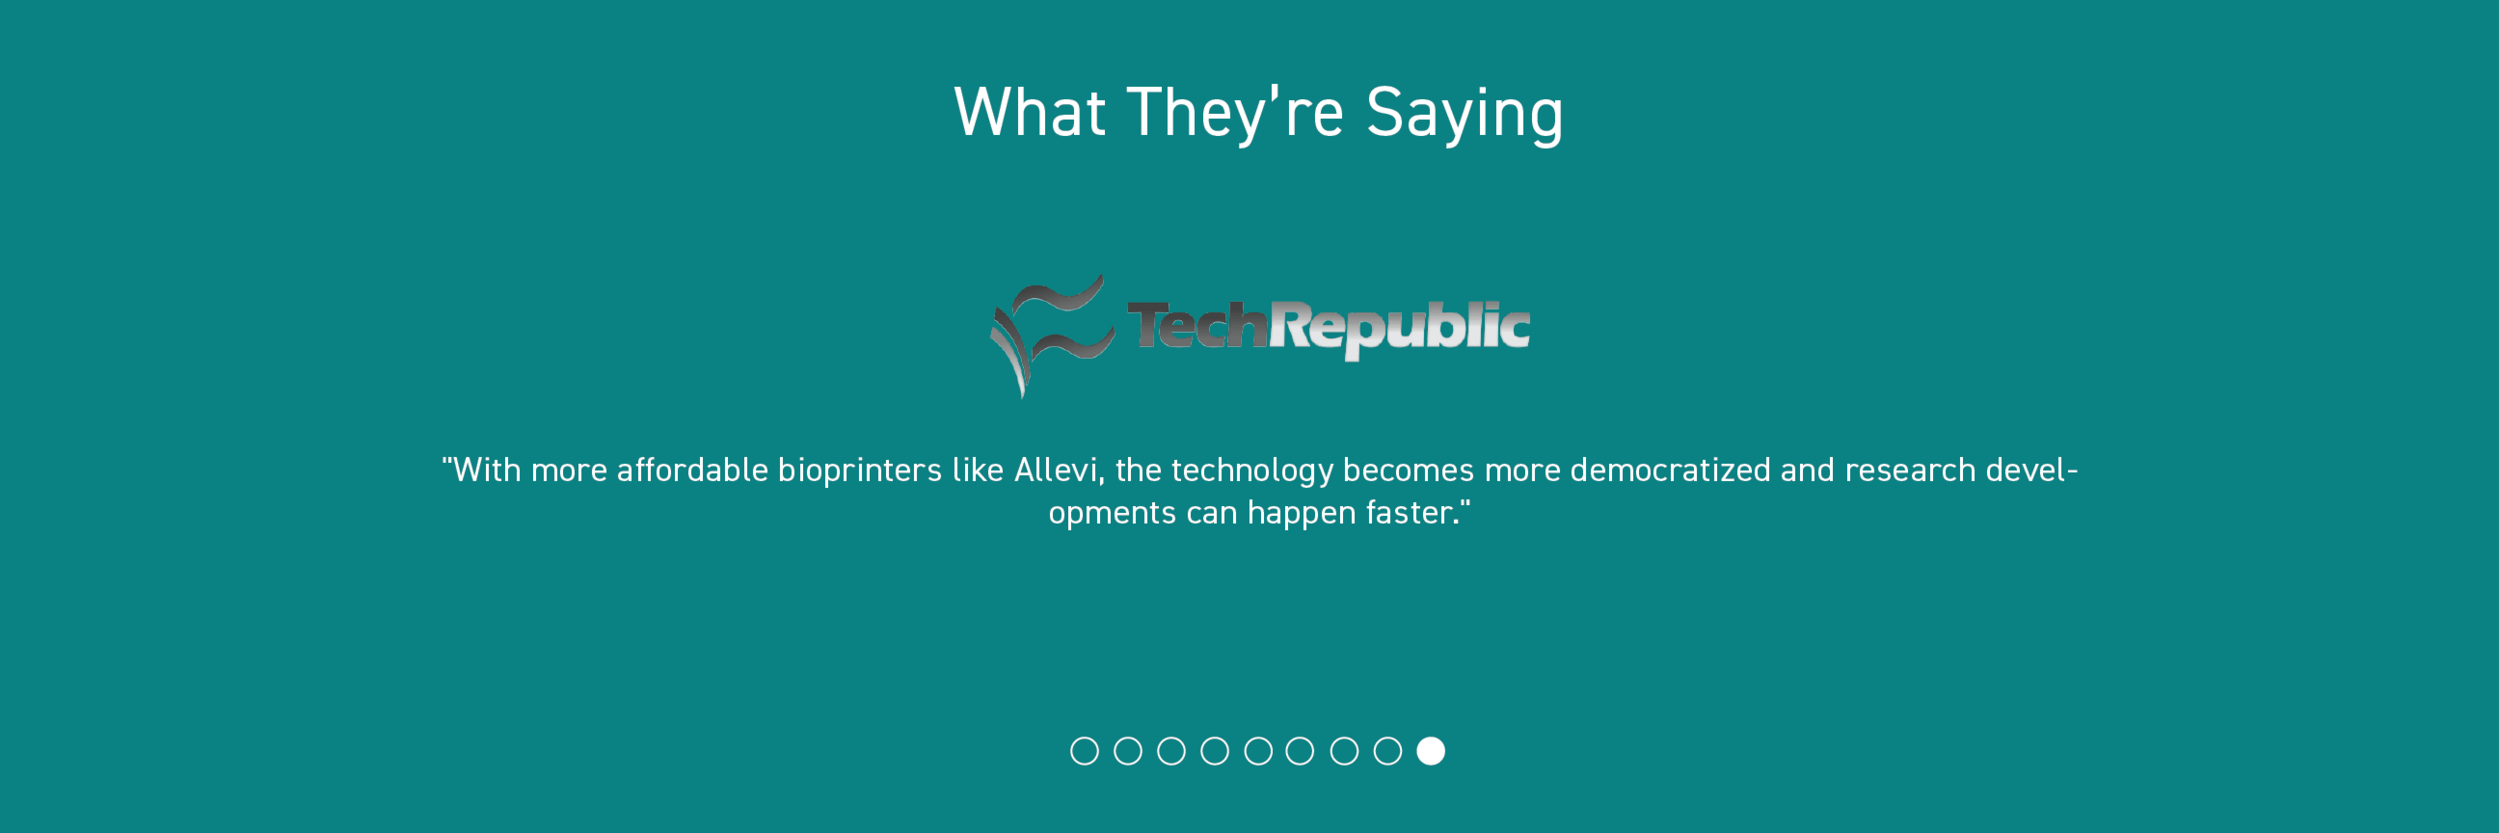 Press+TechRepublic.png